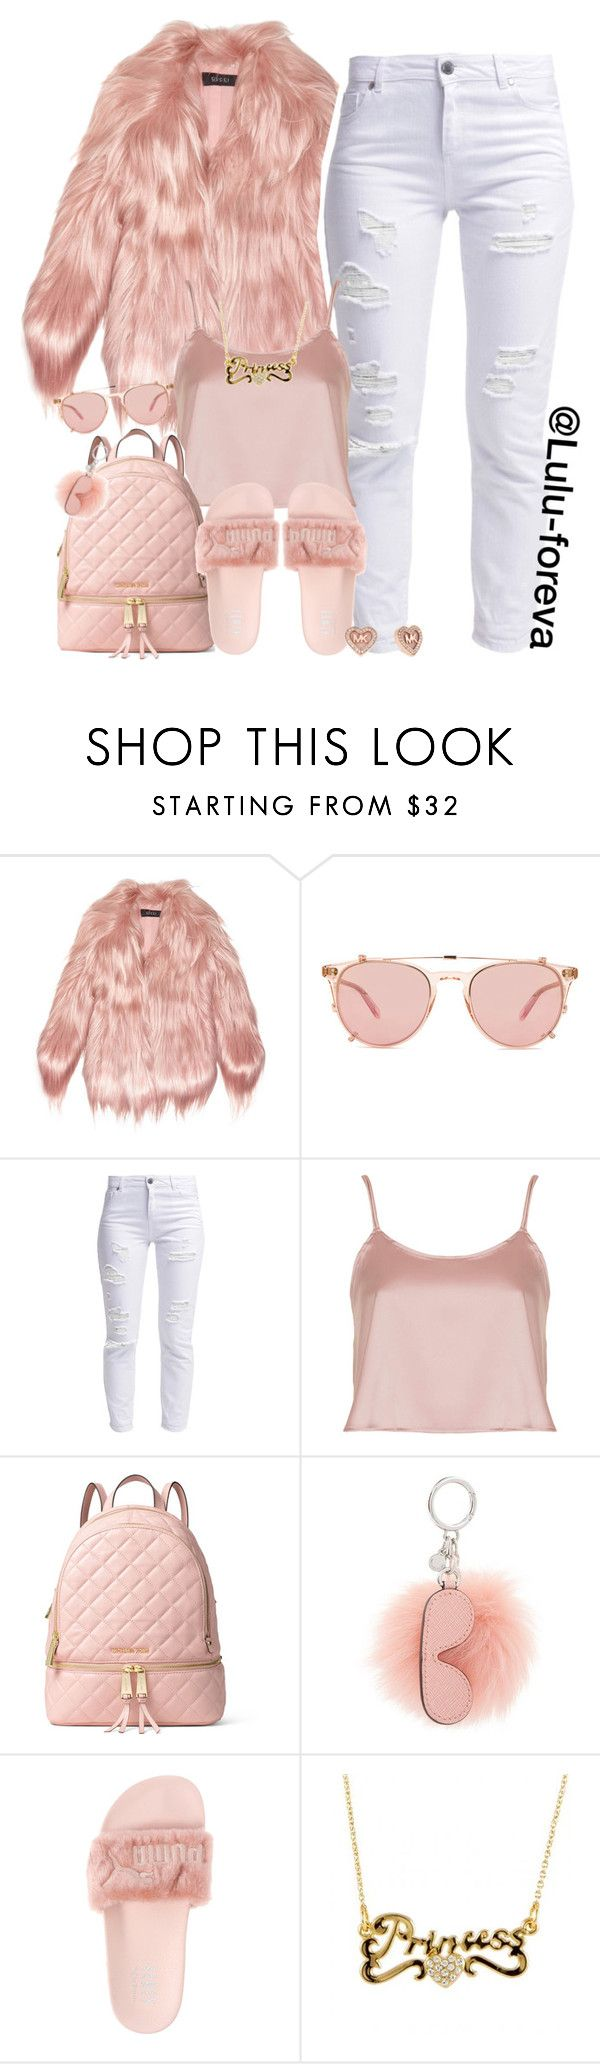 """""""Untitled #1550"""" by lulu-foreva ❤ liked on Polyvore featuring Gucci, Garrett Leight, Miss Selfridge, Oh My Love, MICHAEL Michael Kors, Puma and Michael Kors"""